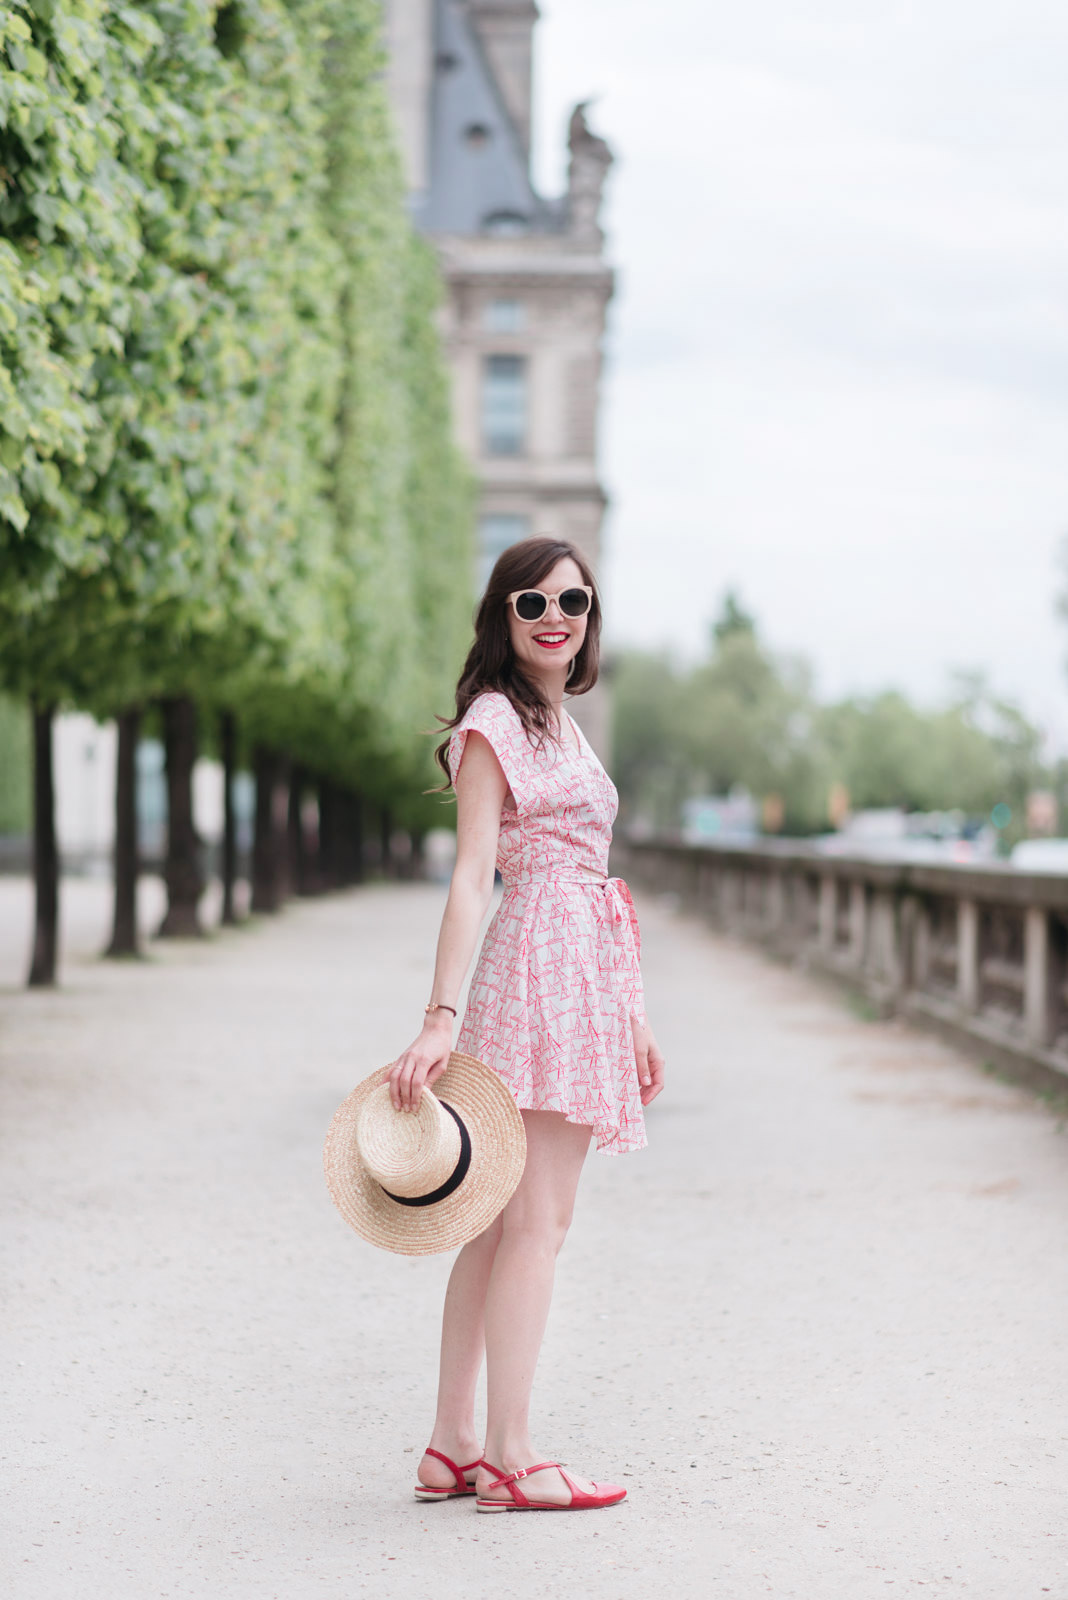 Blog-Mode-And-The-City-Looks-la-robe-a-petits-bateaux-21